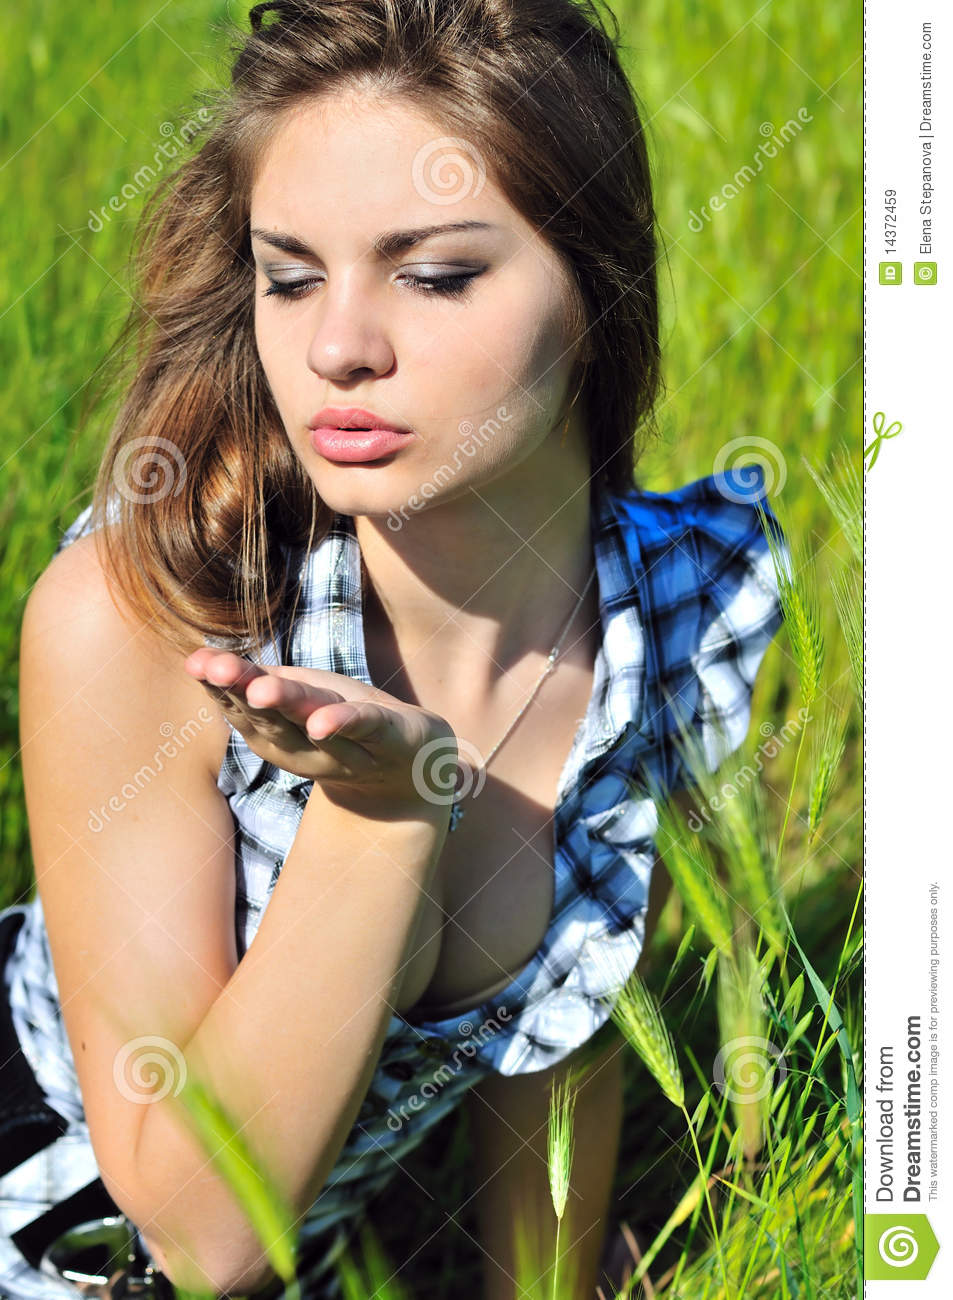 Sweet and tender air kiss stock image. Image of lifestyle - 14372459